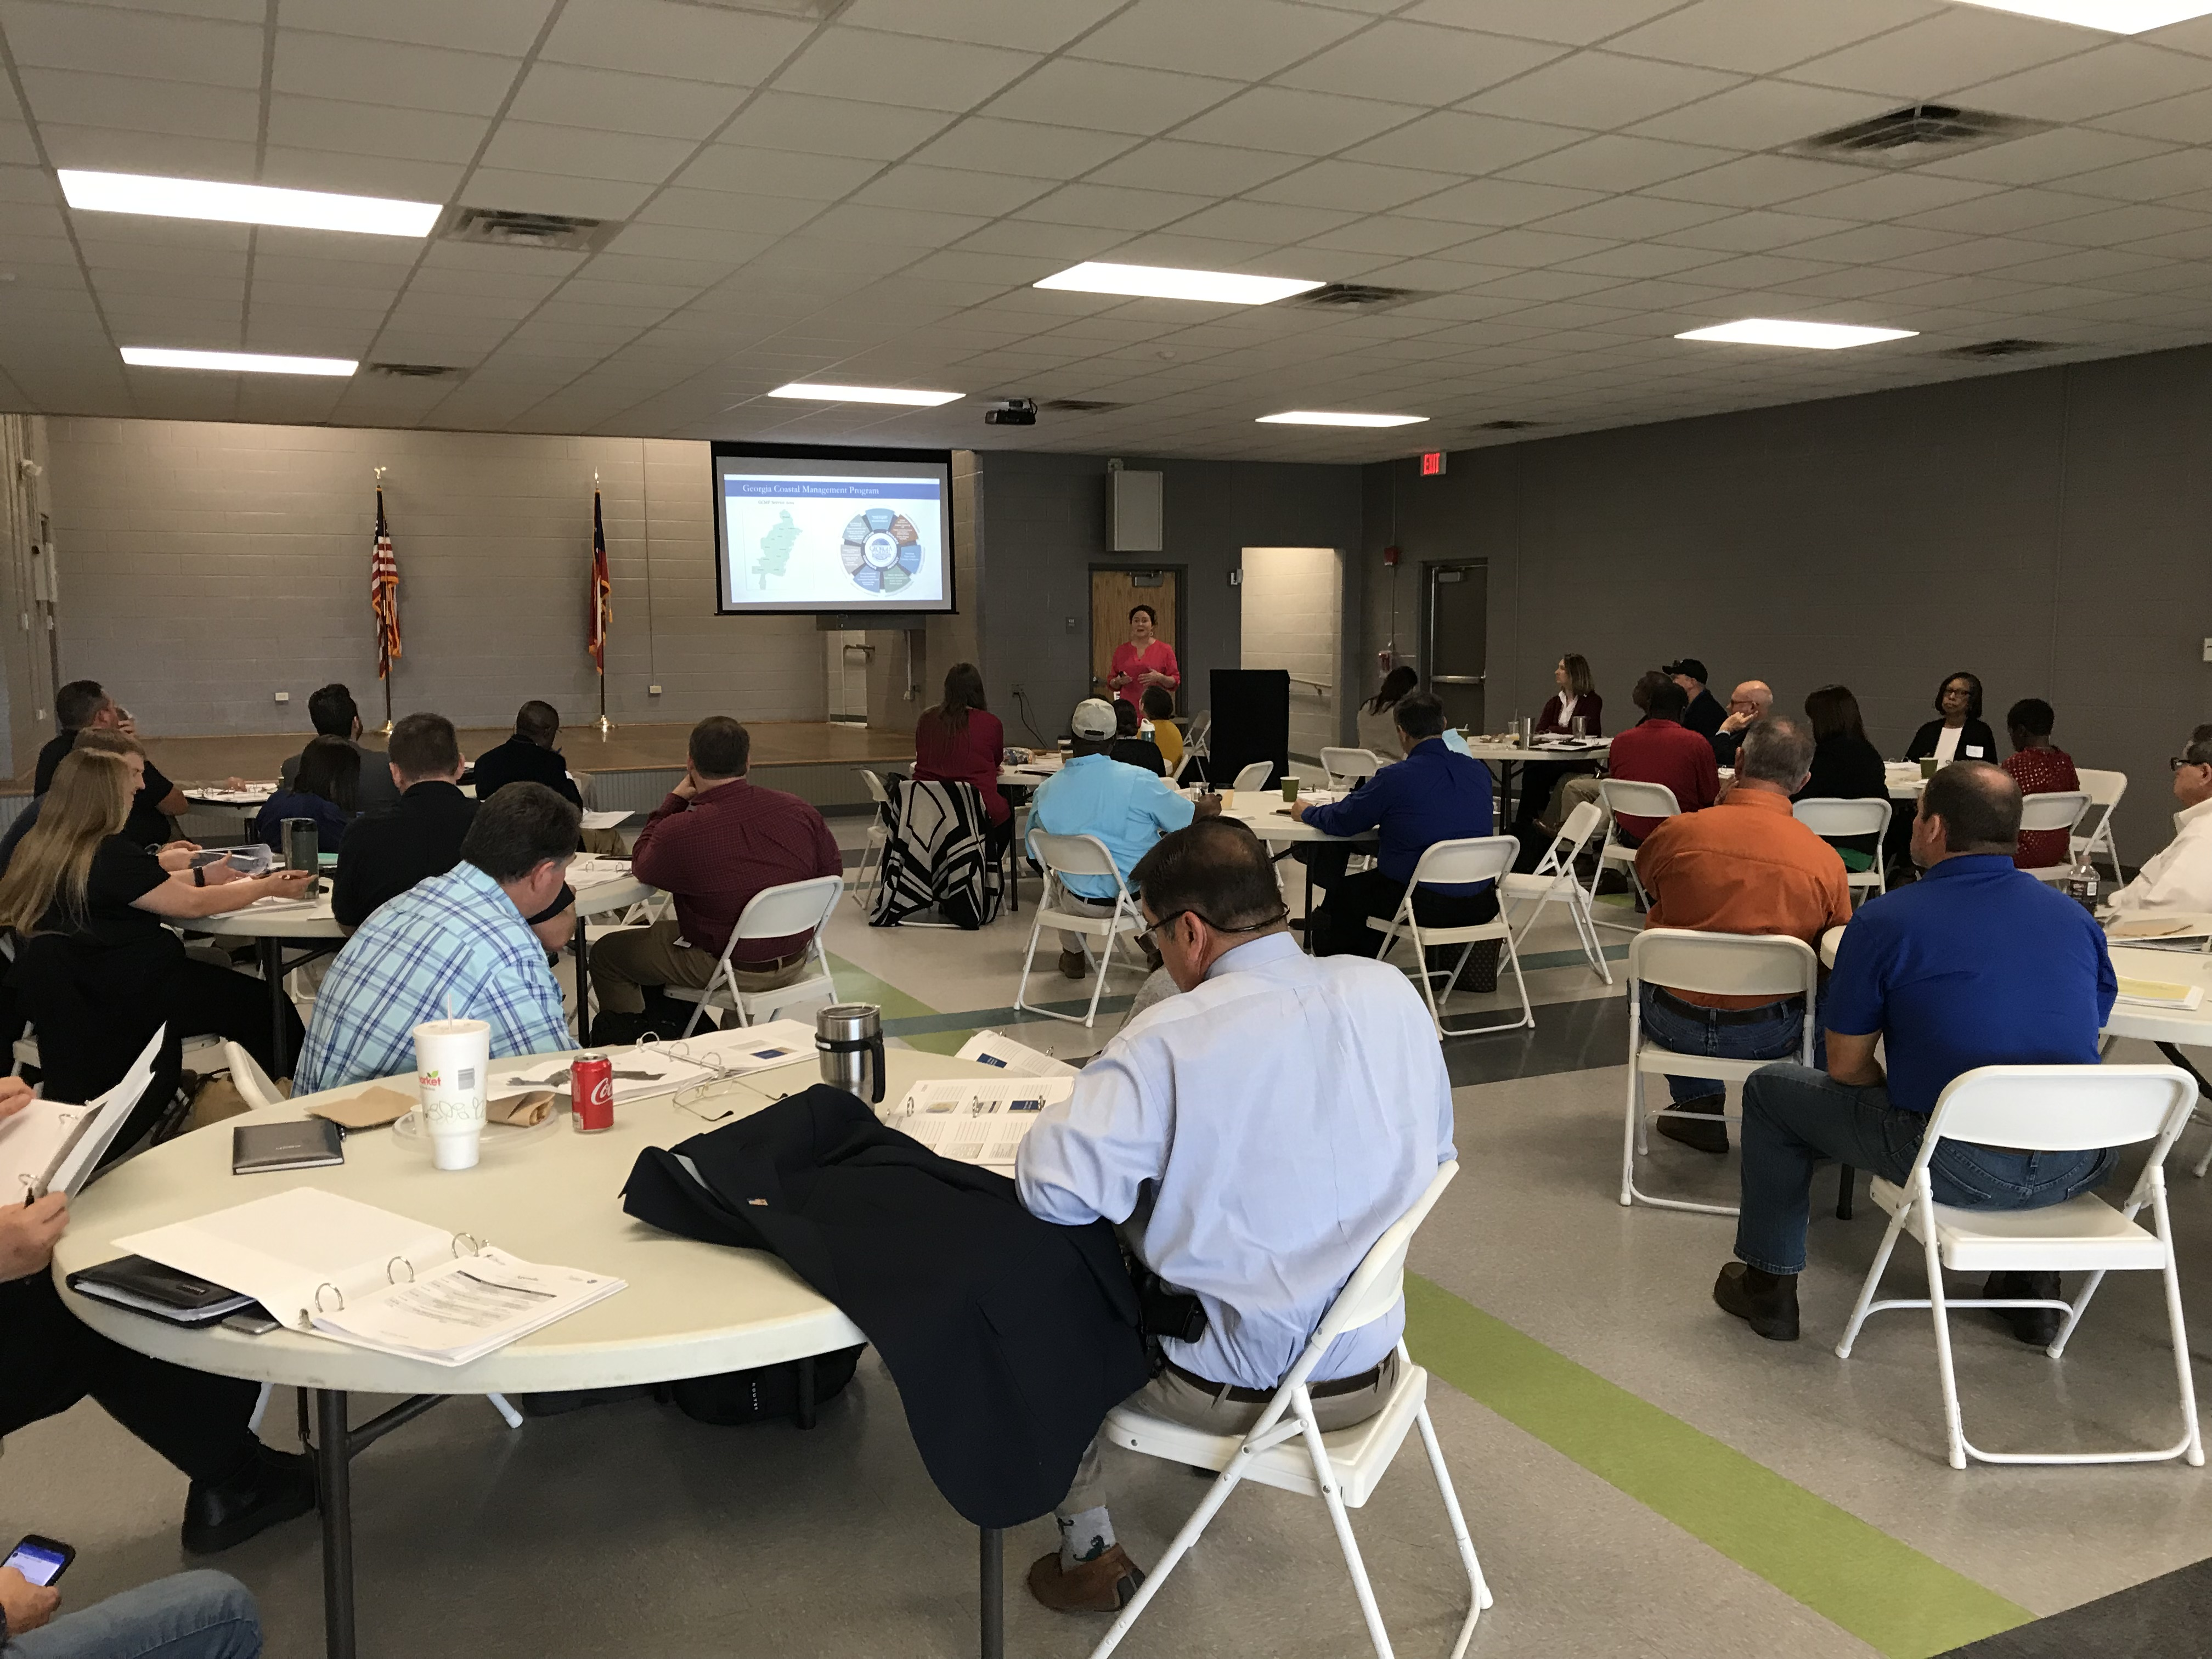 Stakeholders attend the Disaster Recovery and Redevelopment Plan meeting in February in Midway, Ga., in Liberty County.